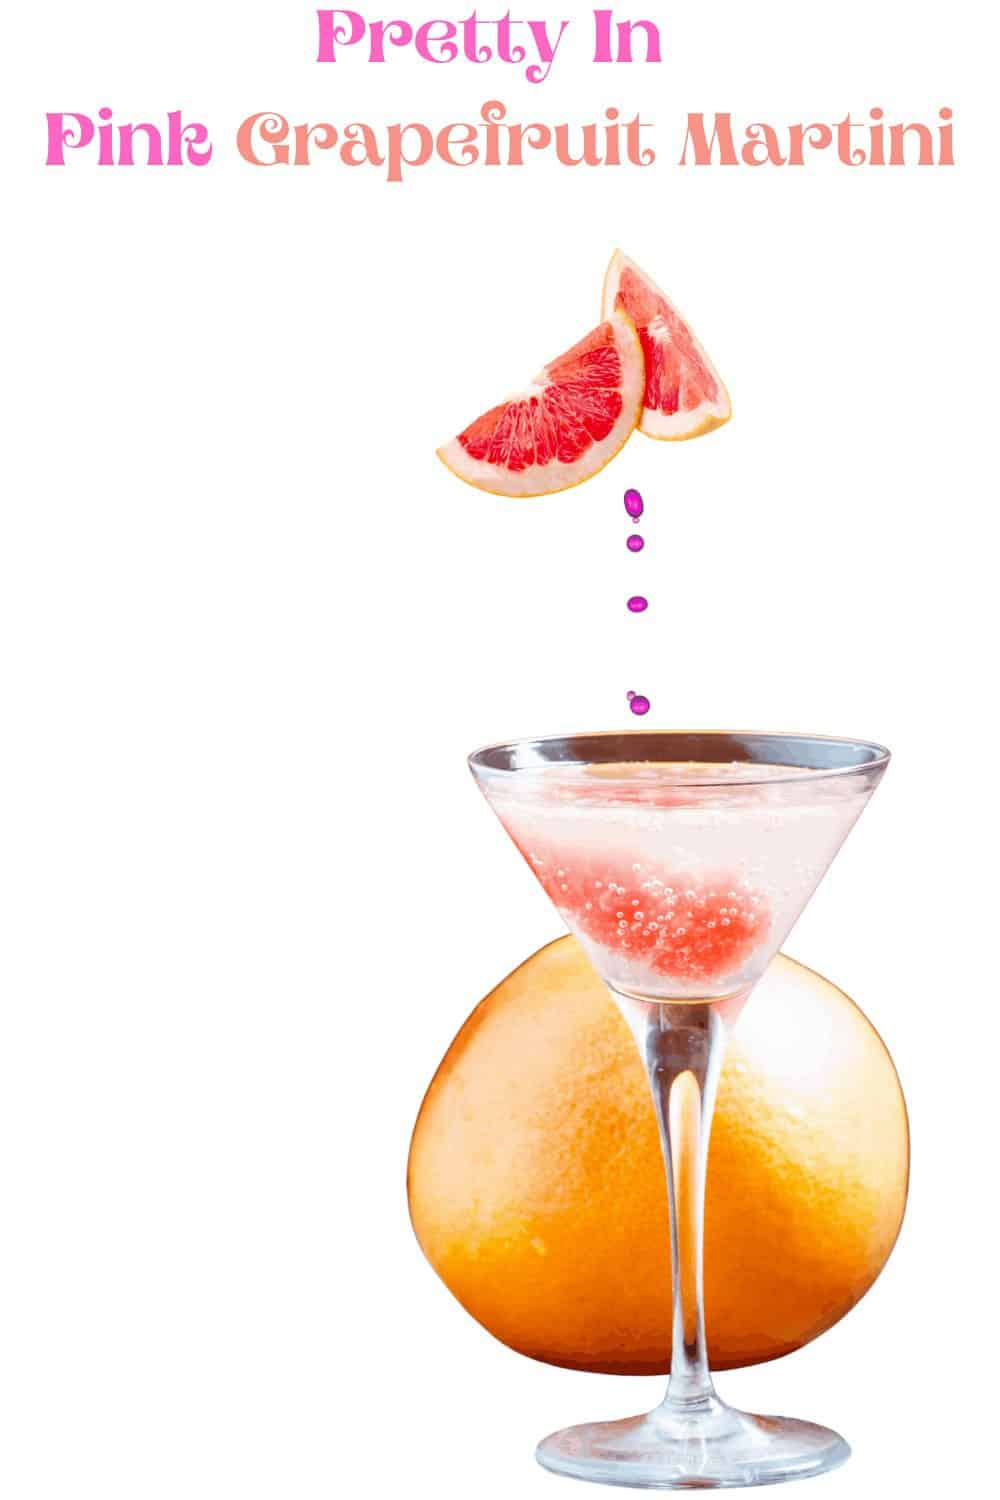 A Light and Refreshing Perfectly Pretty in Pink Grapefruit Martini